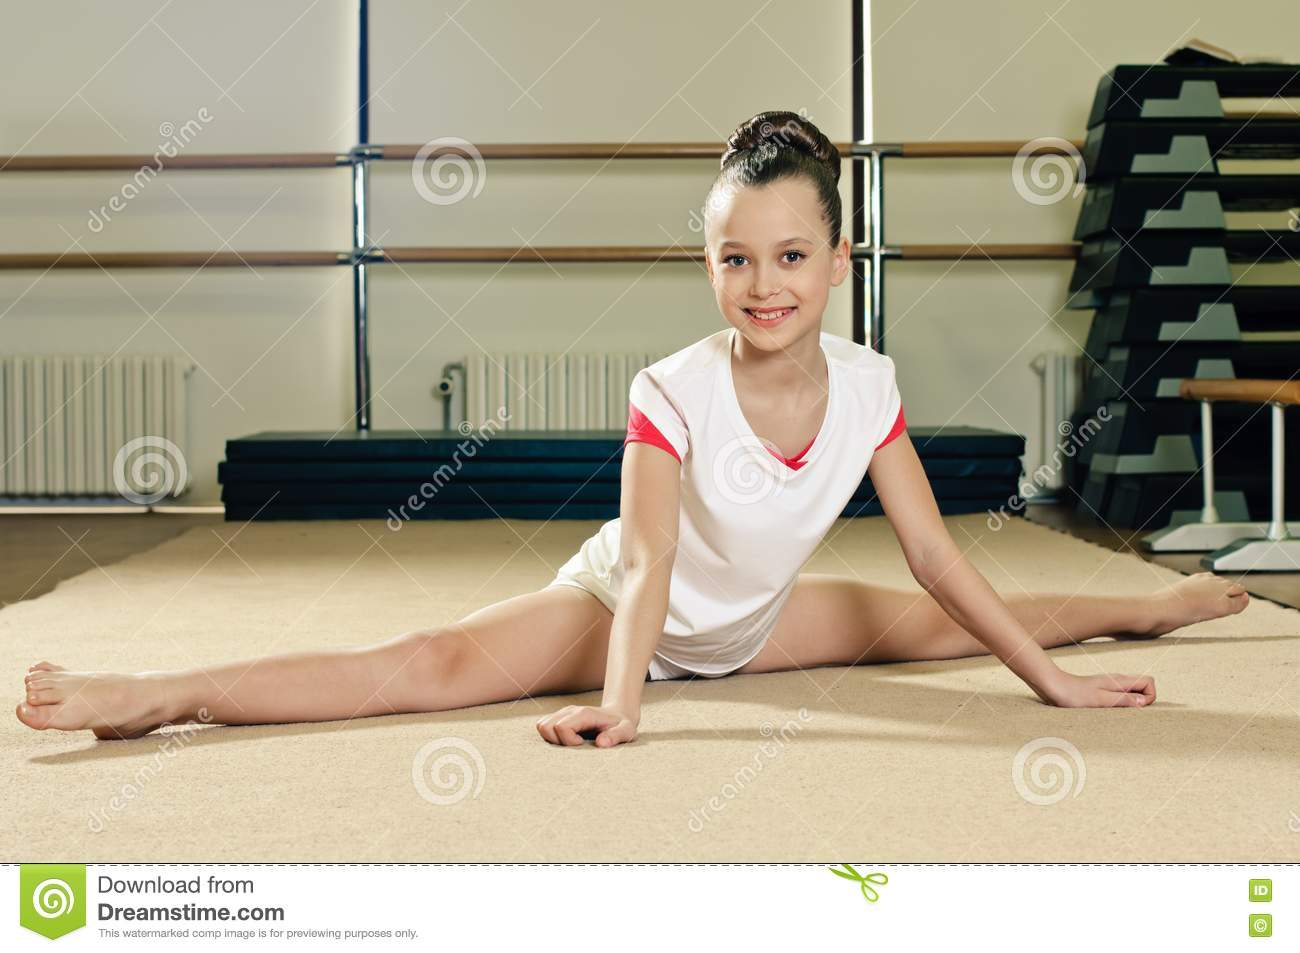 Portrait In The Splits Royalty Free Stock Image - Image: 19625836